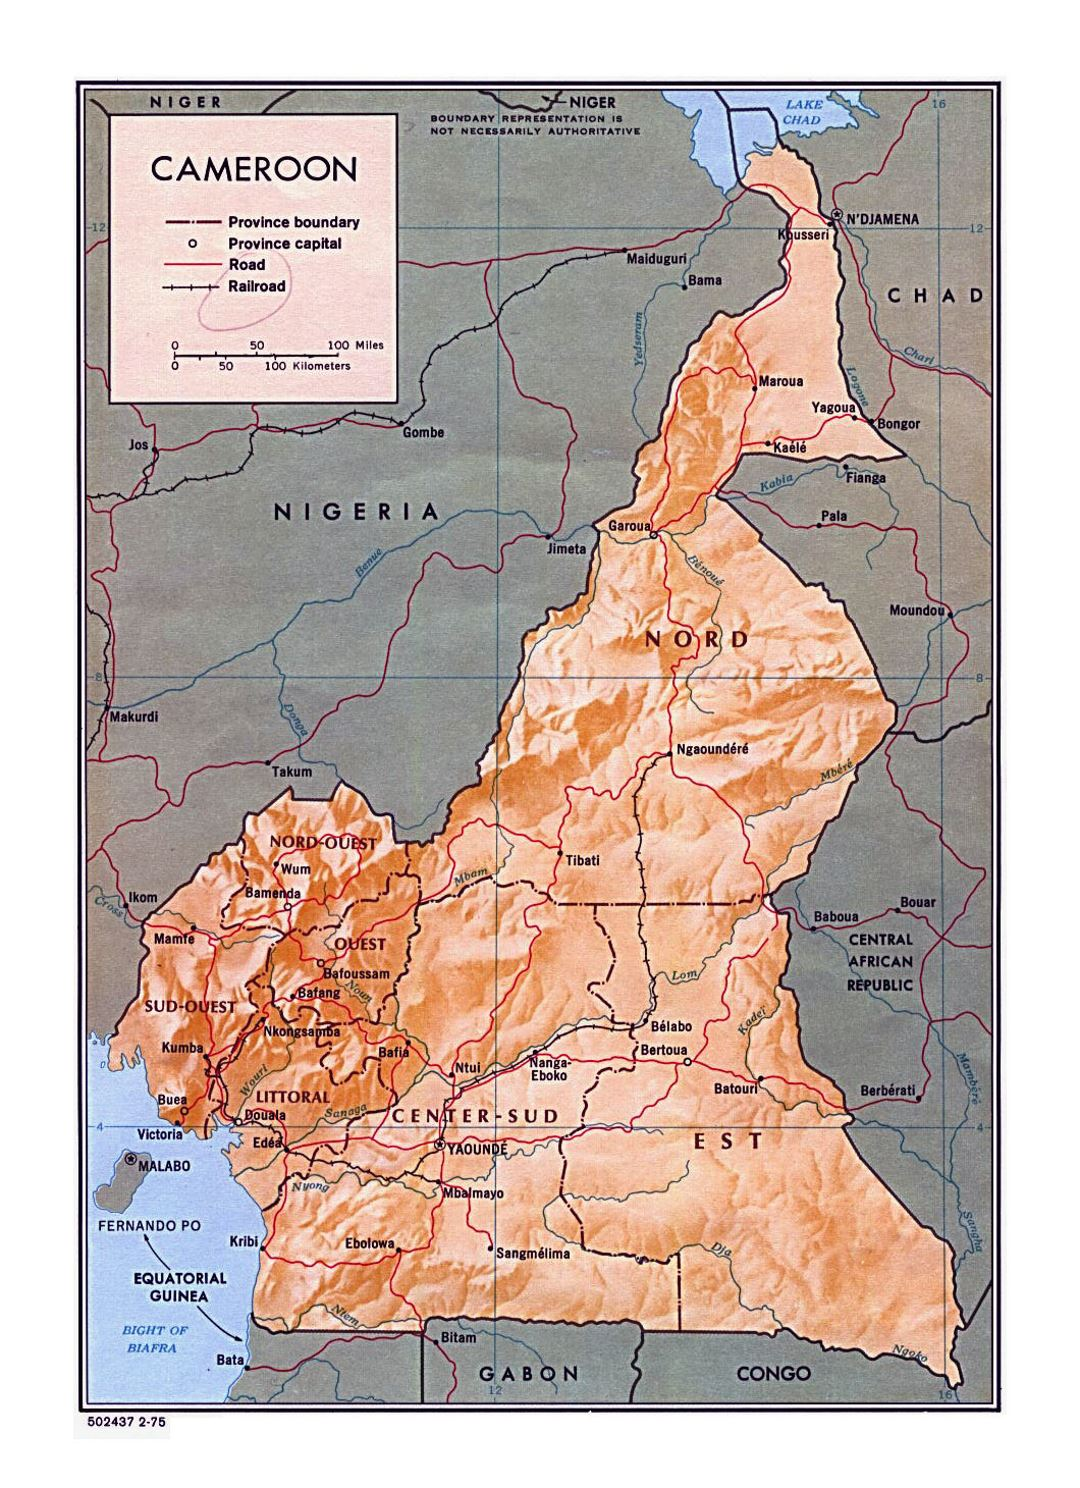 Detailed political and administrative map of Cameroon with relief, roads, railroads and major cities - 1975